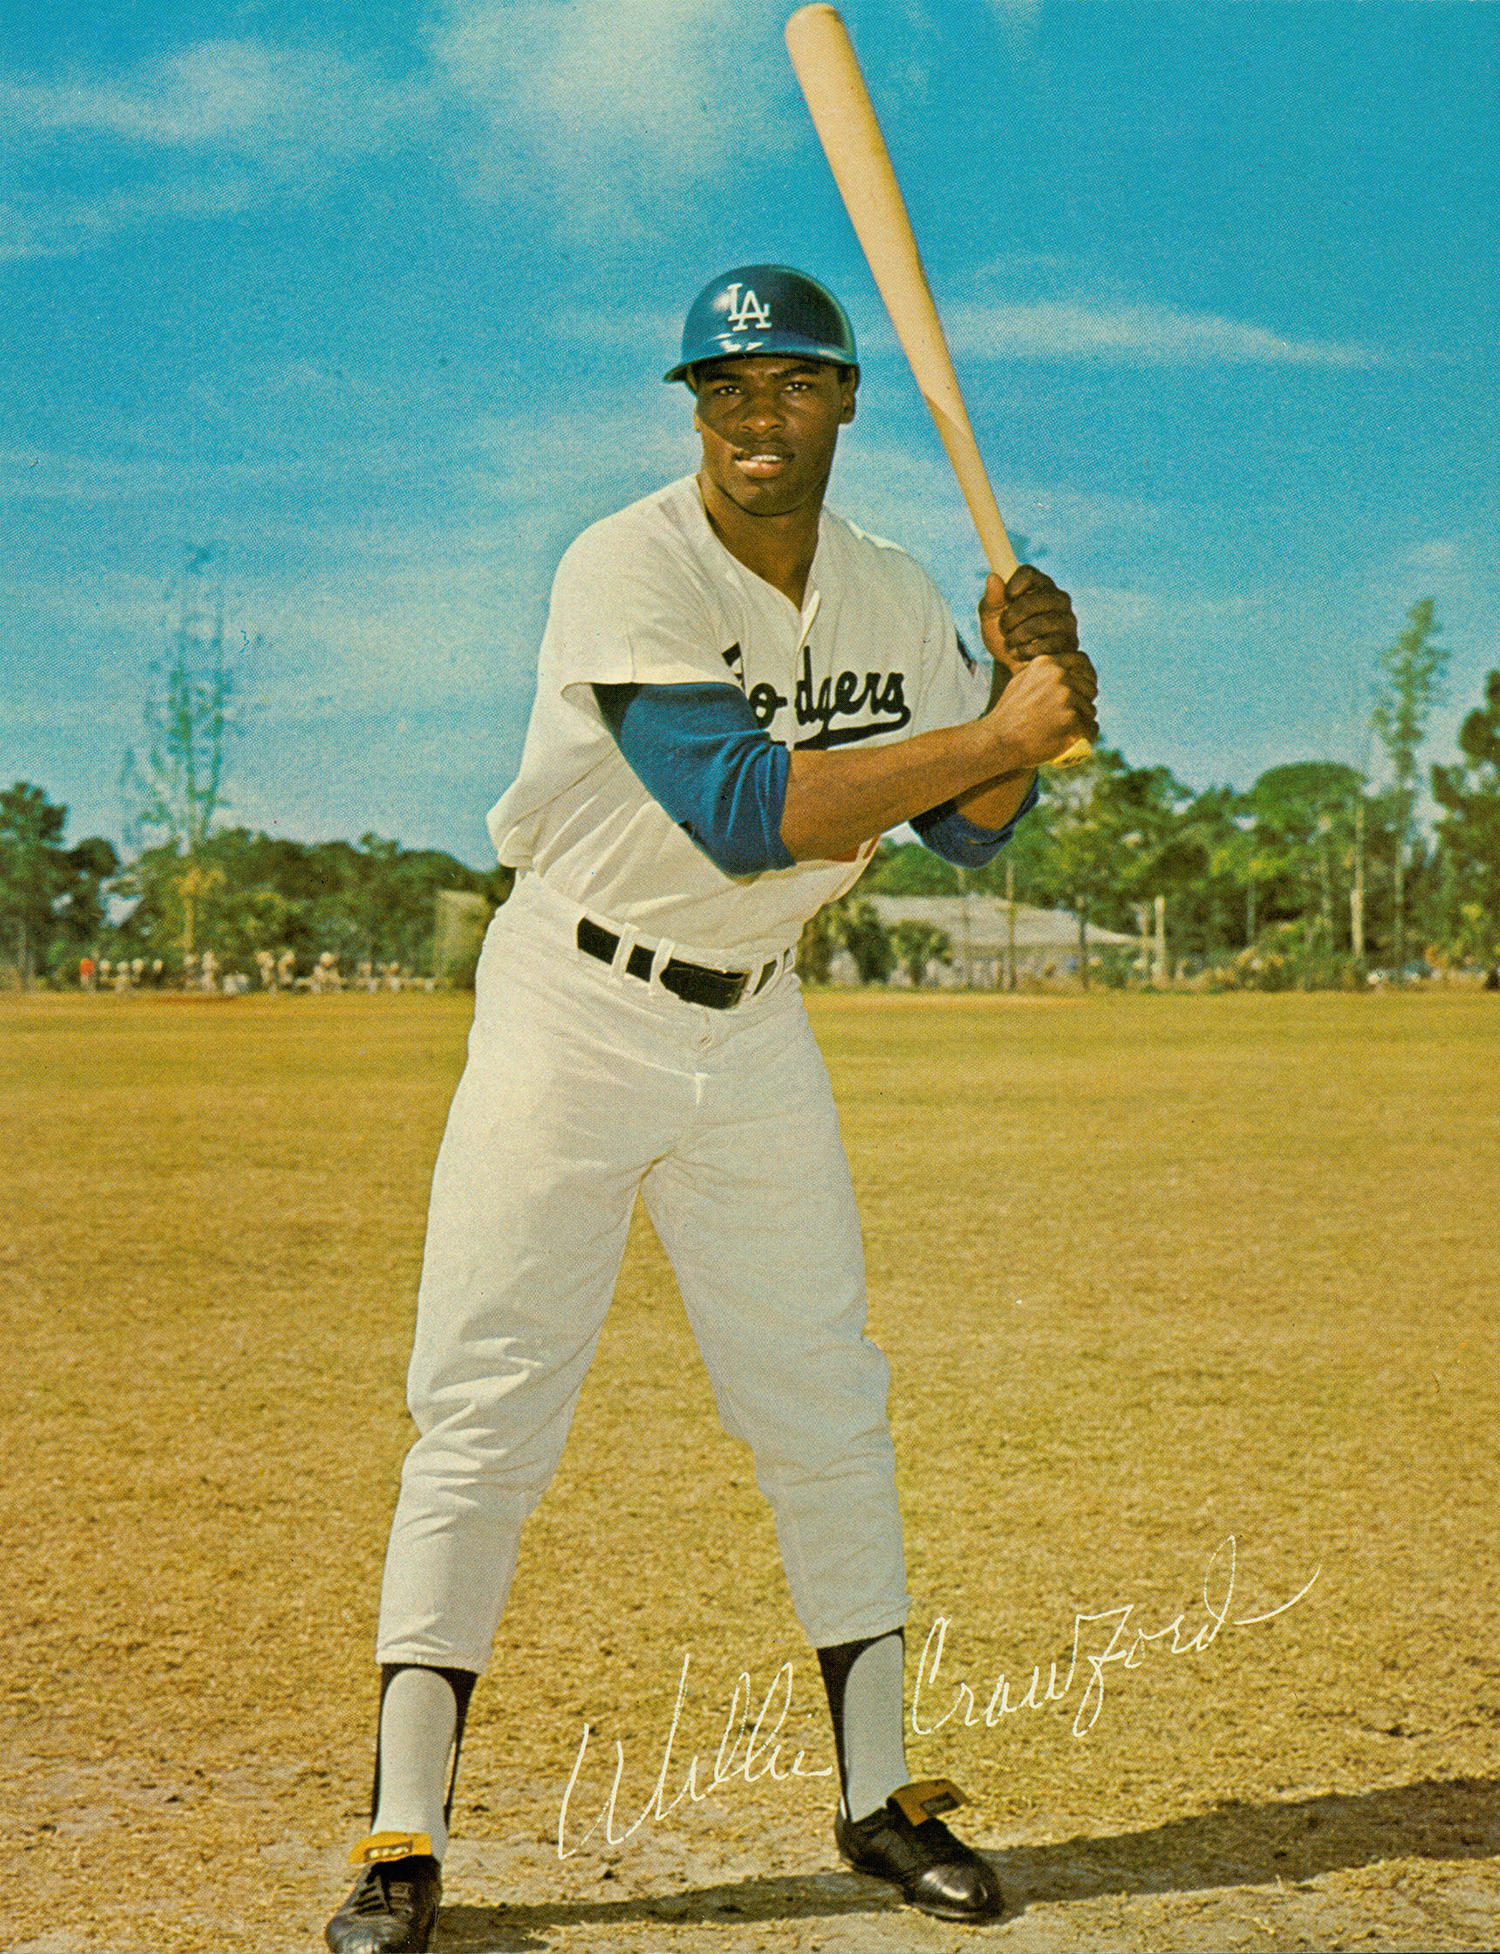 The Athletics tried to sign Willie Crawford as an amateur, but lost out to the Los Angeles Dodgers, a team Crawford would play for from 1964-1975. (National Baseball Hall of Fame)